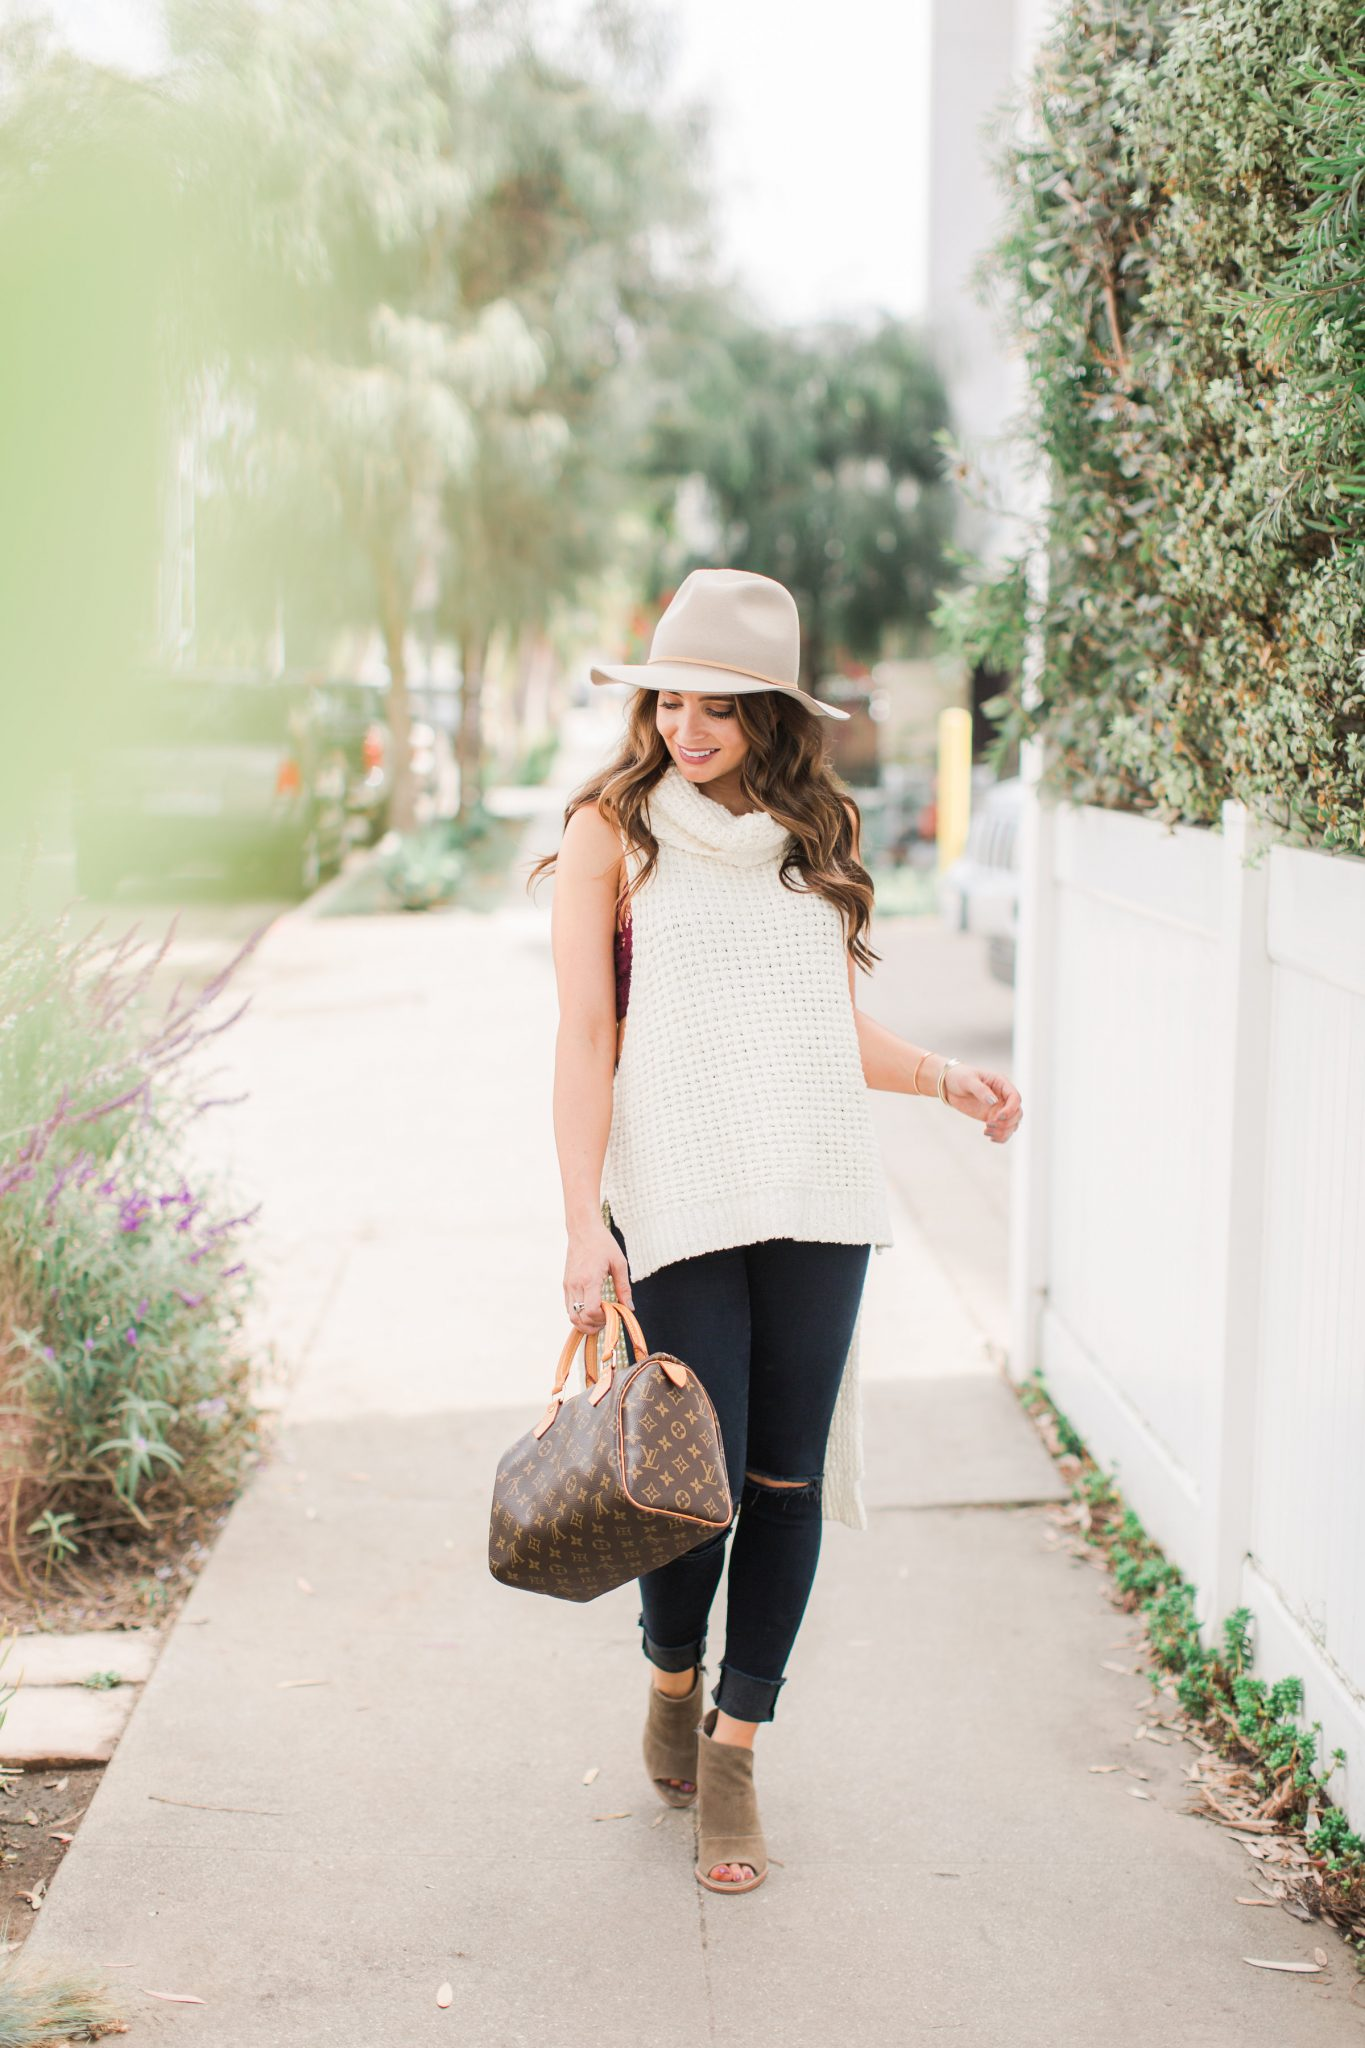 Fall Style - sleeveless turtleneck, distressed denim, tan hat | Maxie Elle - Fall Layering Top by popular Orange County fashion blogger Maxie Elle